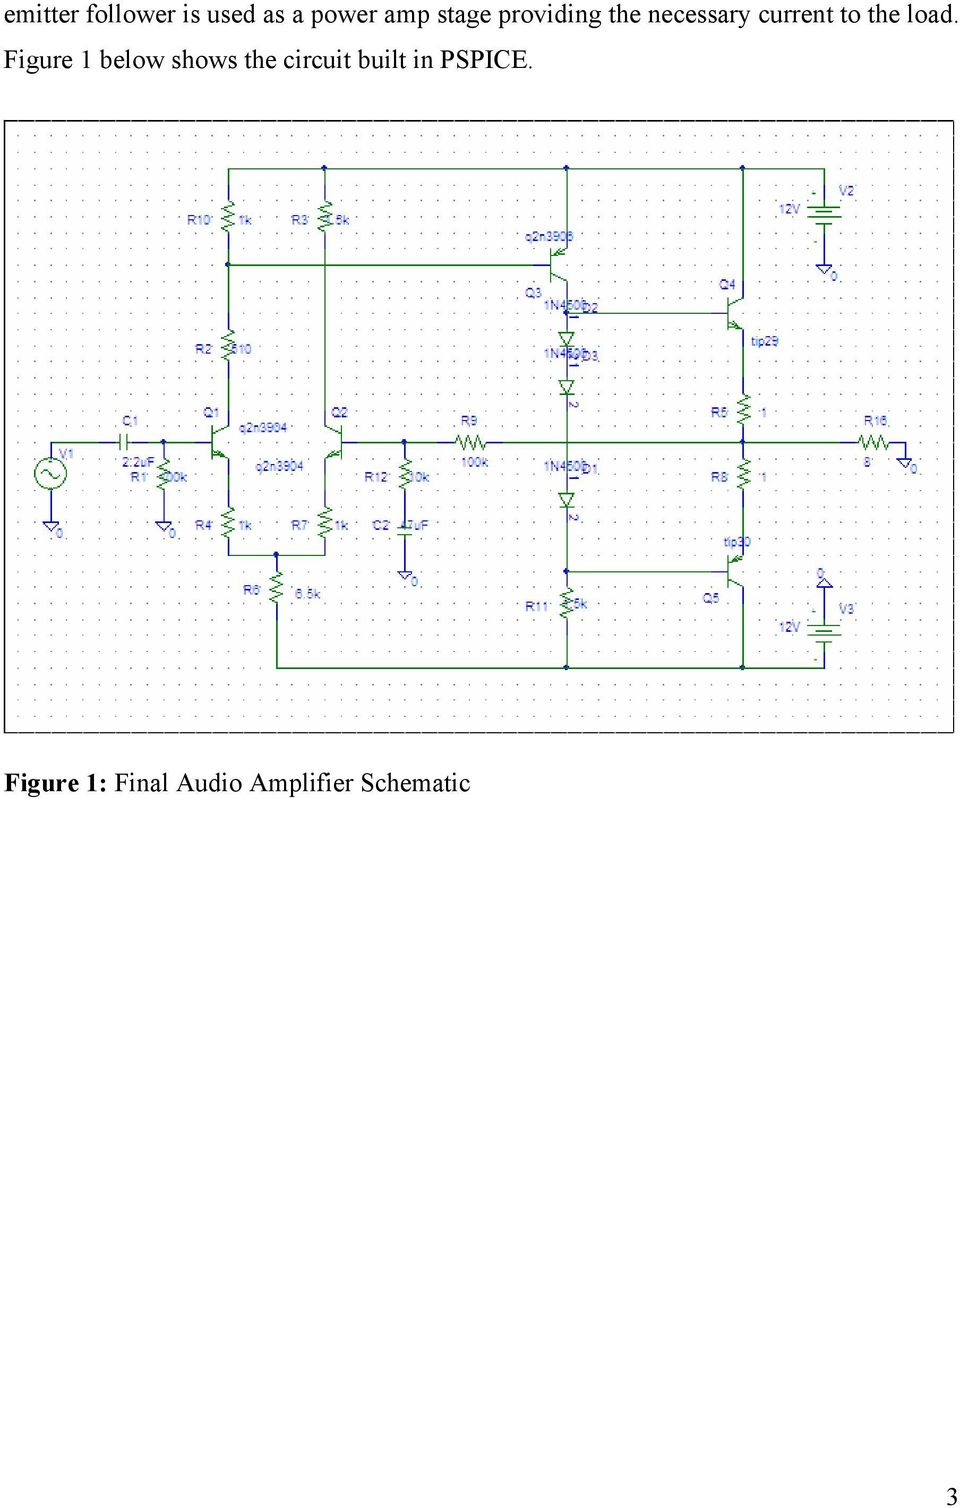 Design And Build Your Own Audio Amplifier Pdf Guidelines For Bipolar Transistor Preamplifier Circuits Figure Below Shows The Circuit Built In